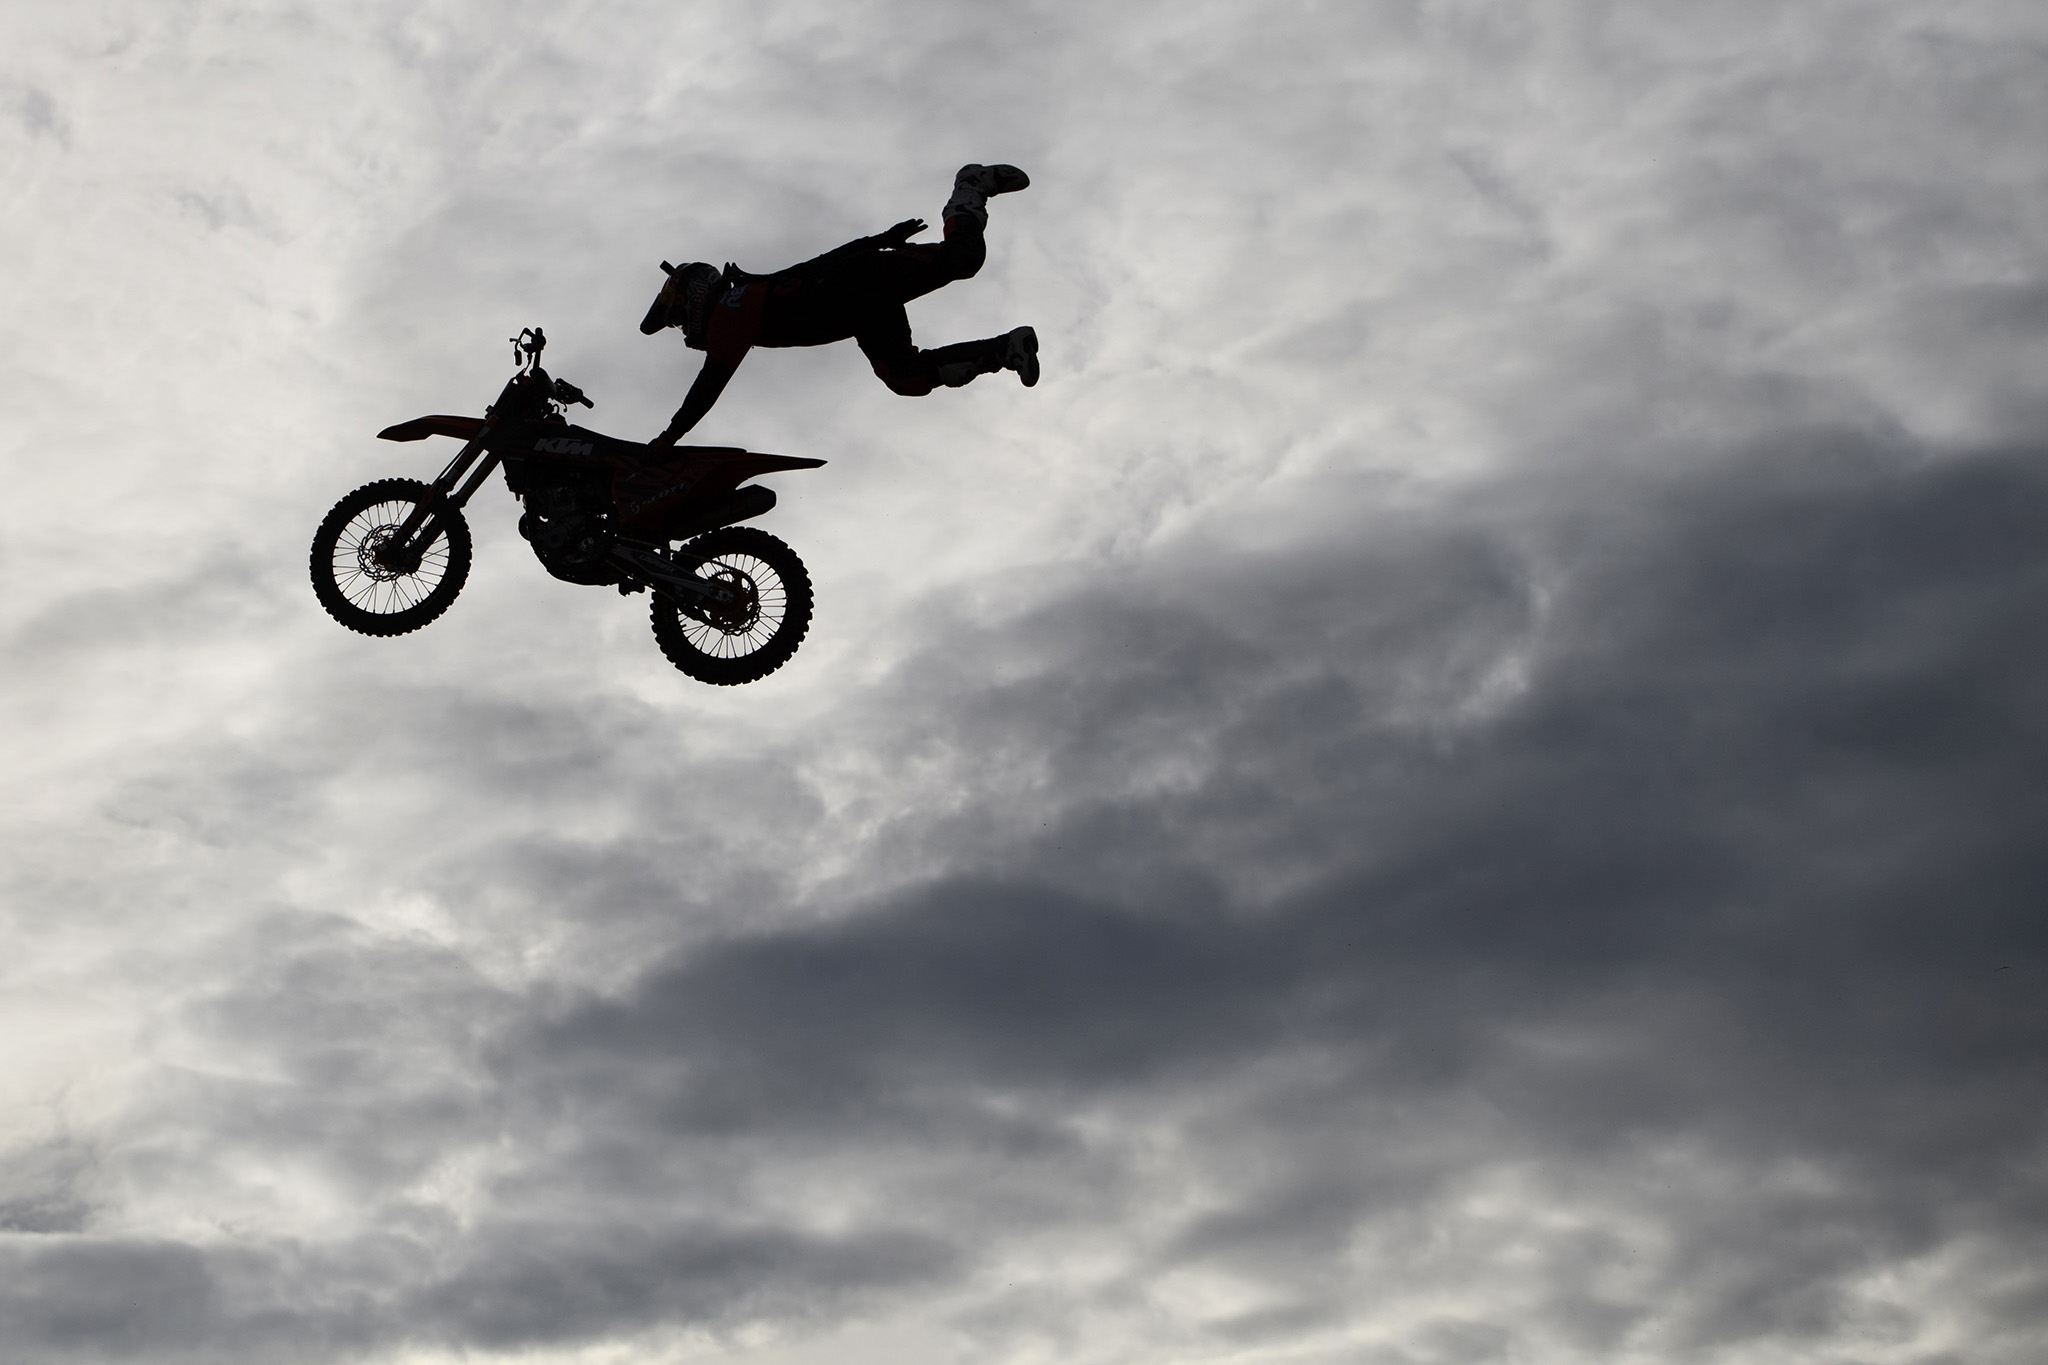 Swiss Freestyle Motocross  driver Mat Rebeaud performs a figure during a FMX jump training session ten days before the 31st Geneva International Supercross, in Payerne, Switzerland, Tuesday, Nov.22, 2016. (Laurent Gillieron/Keystone via AP)